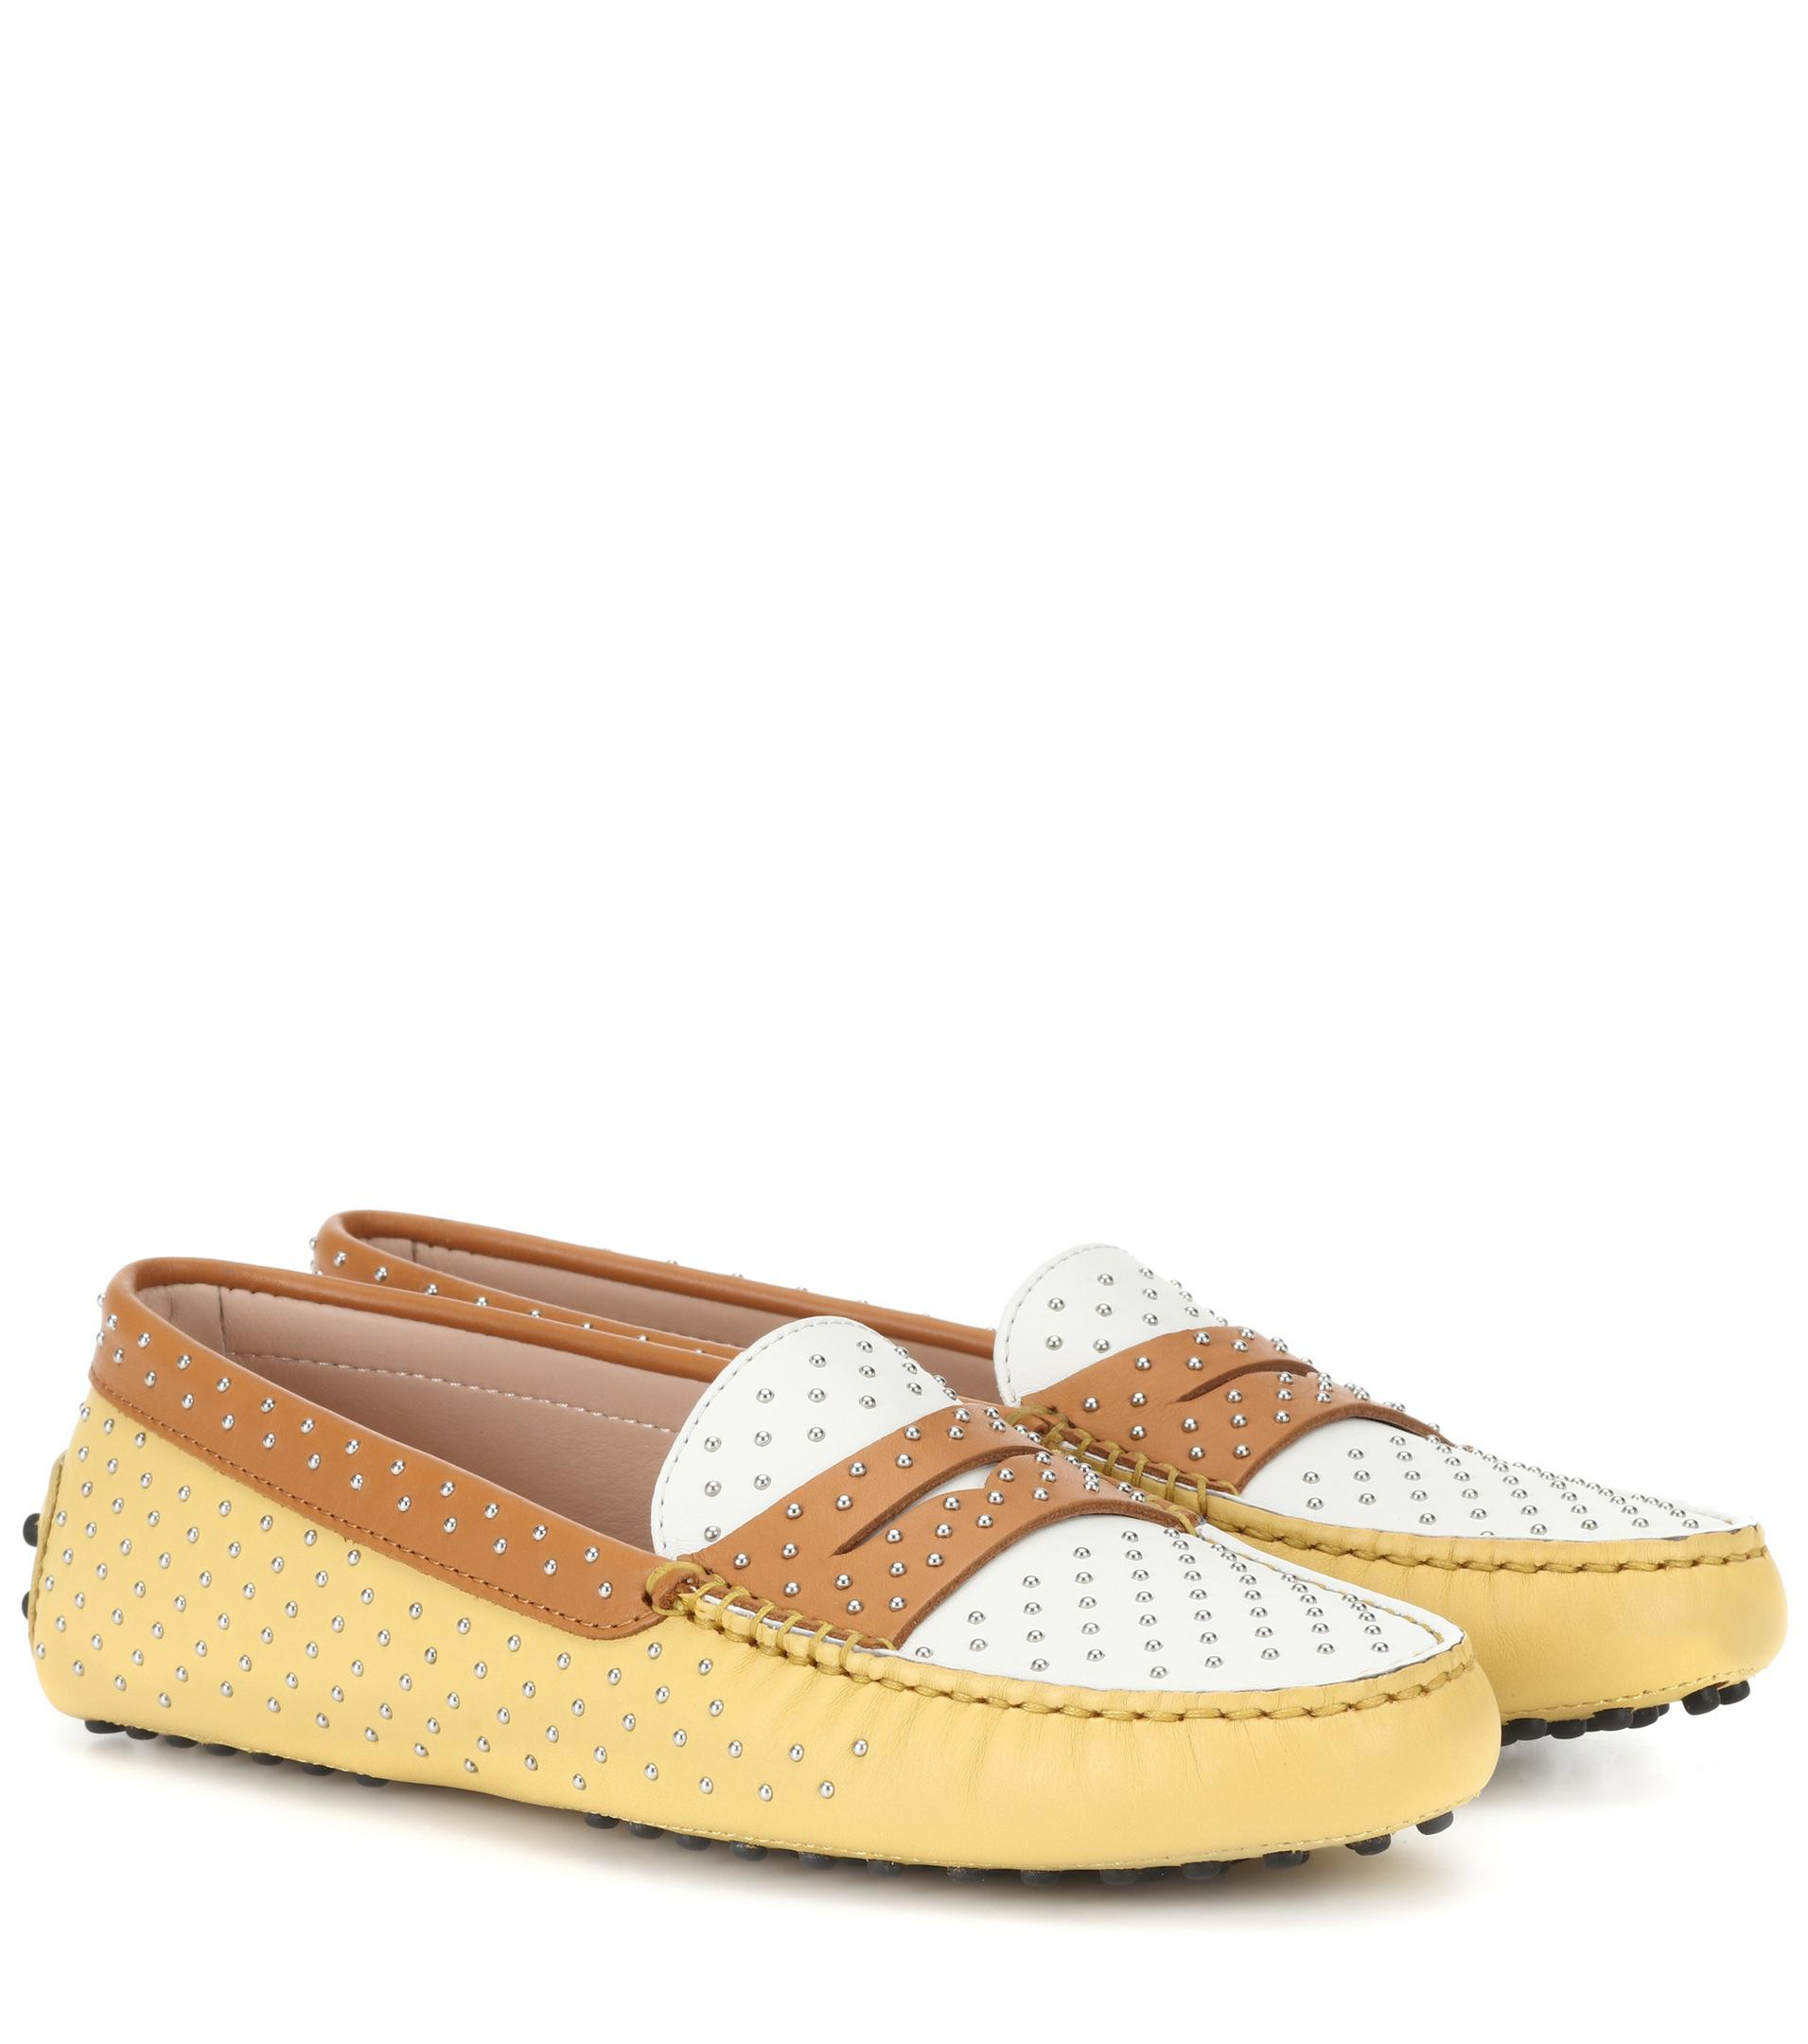 c8a3f033f22f Lyst - Tod s Gommino Studded Leather Loafers in Yellow